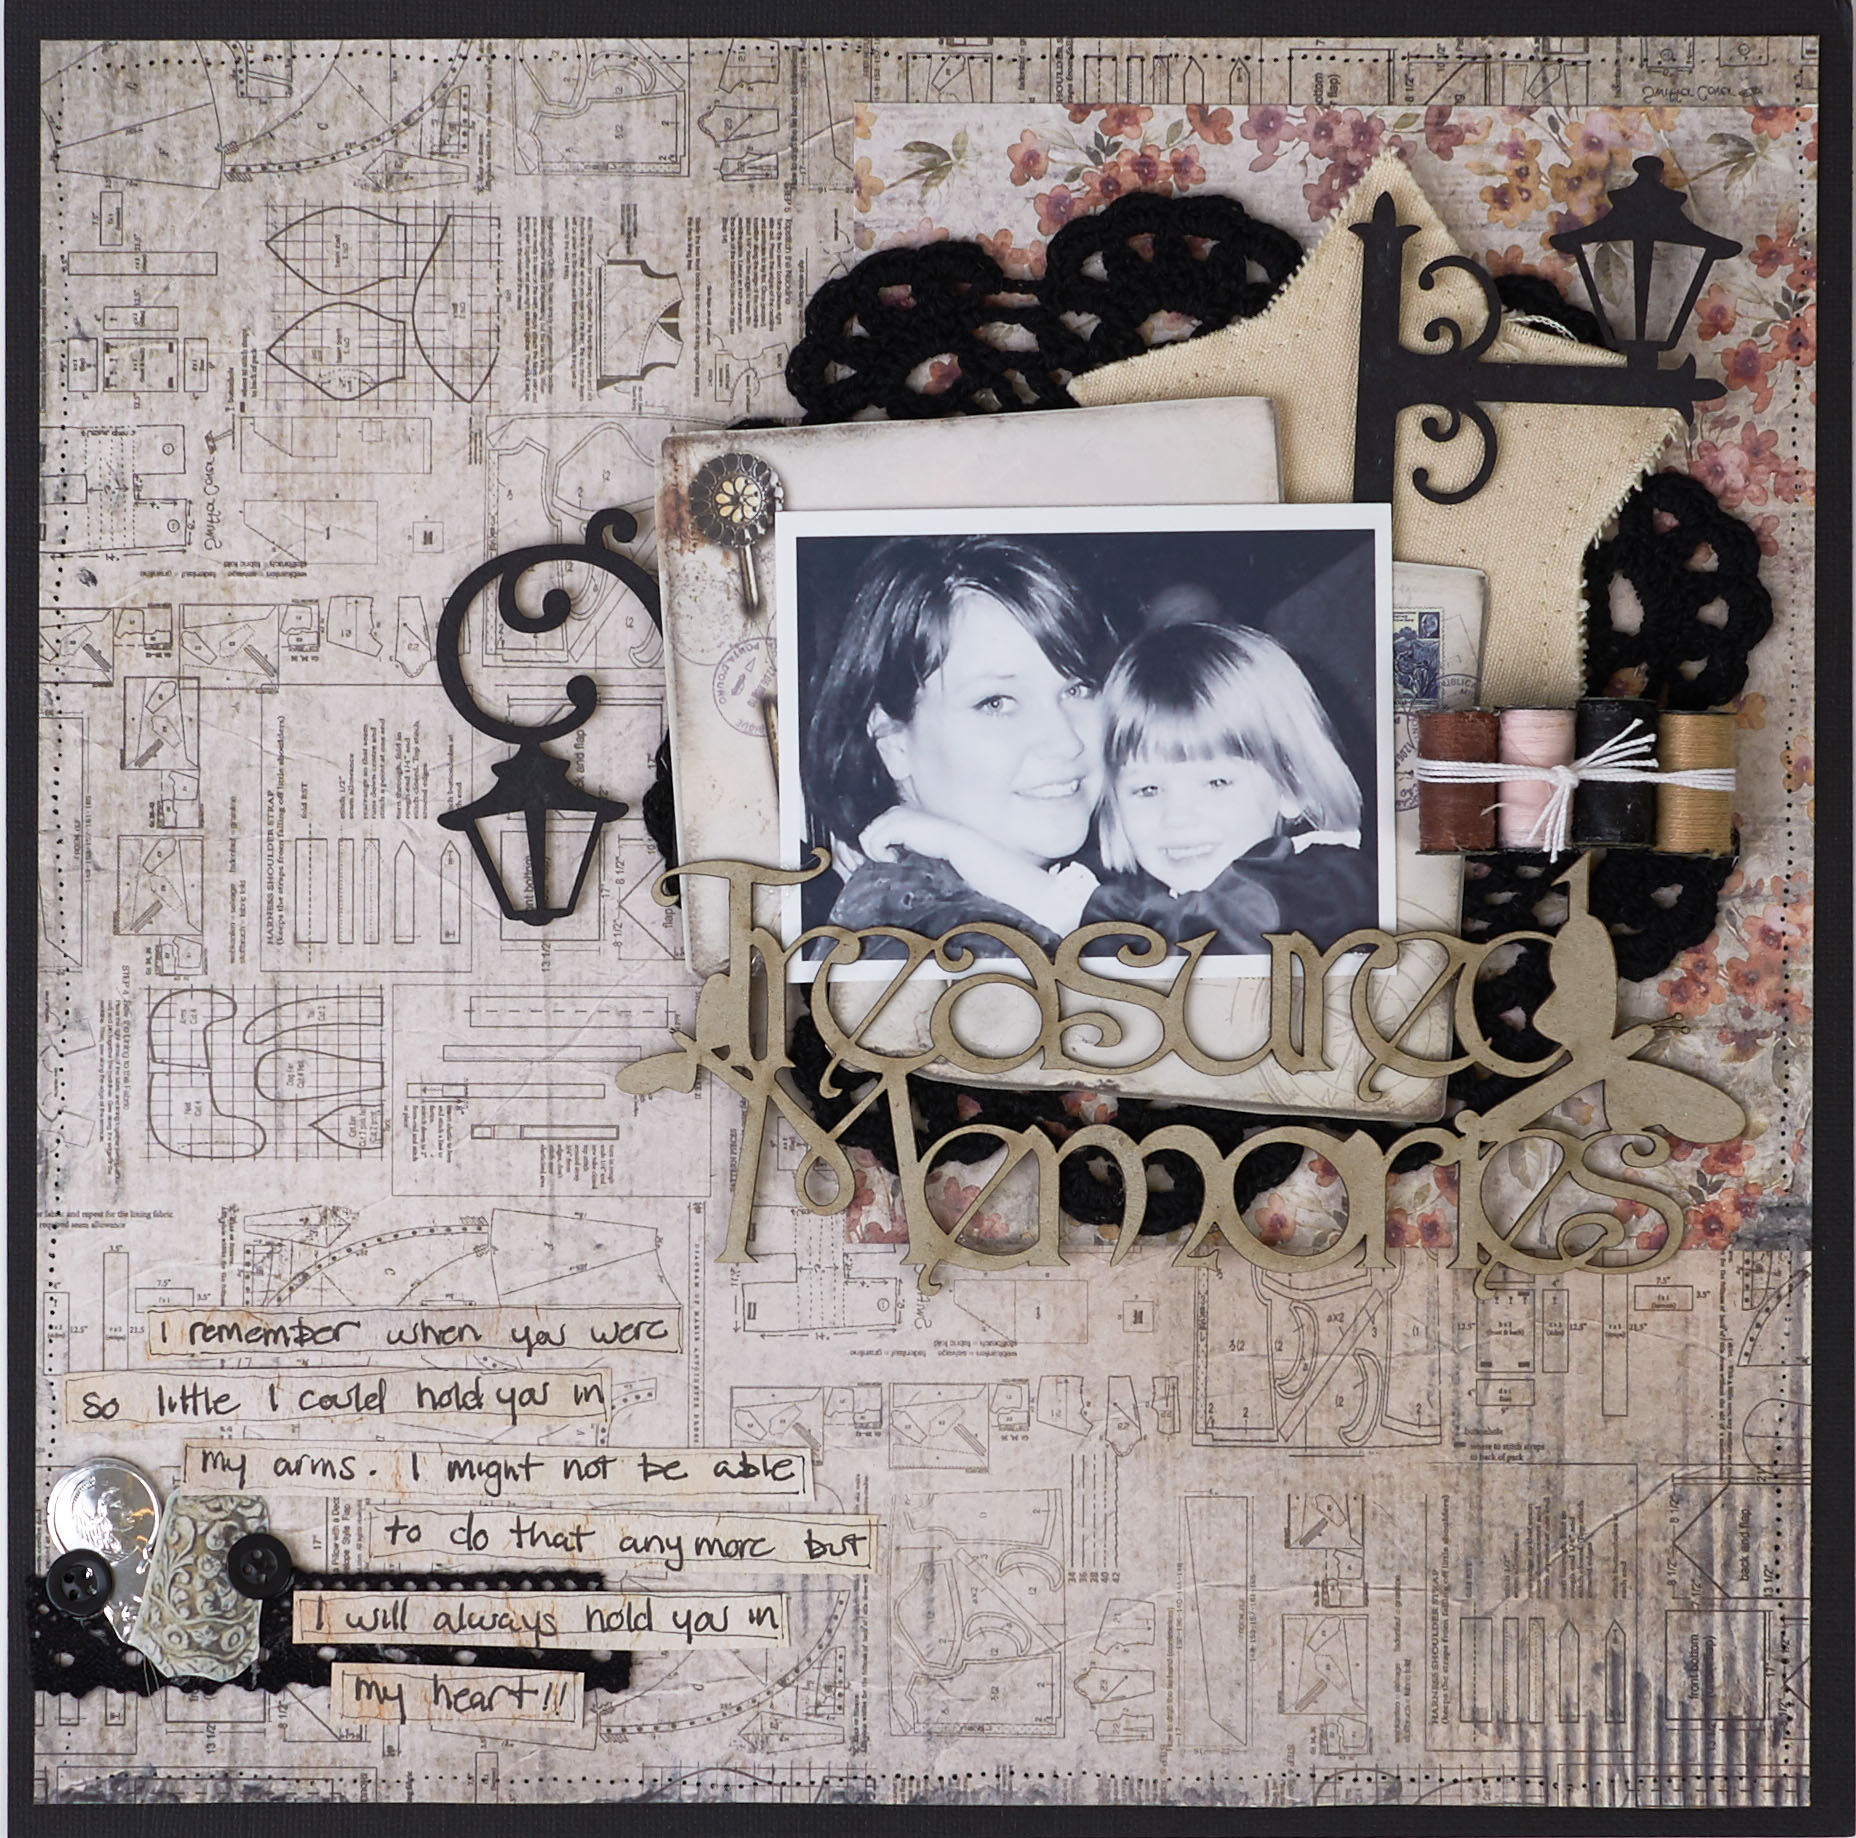 Scrapbook Layout Featuring Sewing | Designed by Christy Riopel | Creative Scrapbooker Magazine #scrapbooking #rememberingchristy